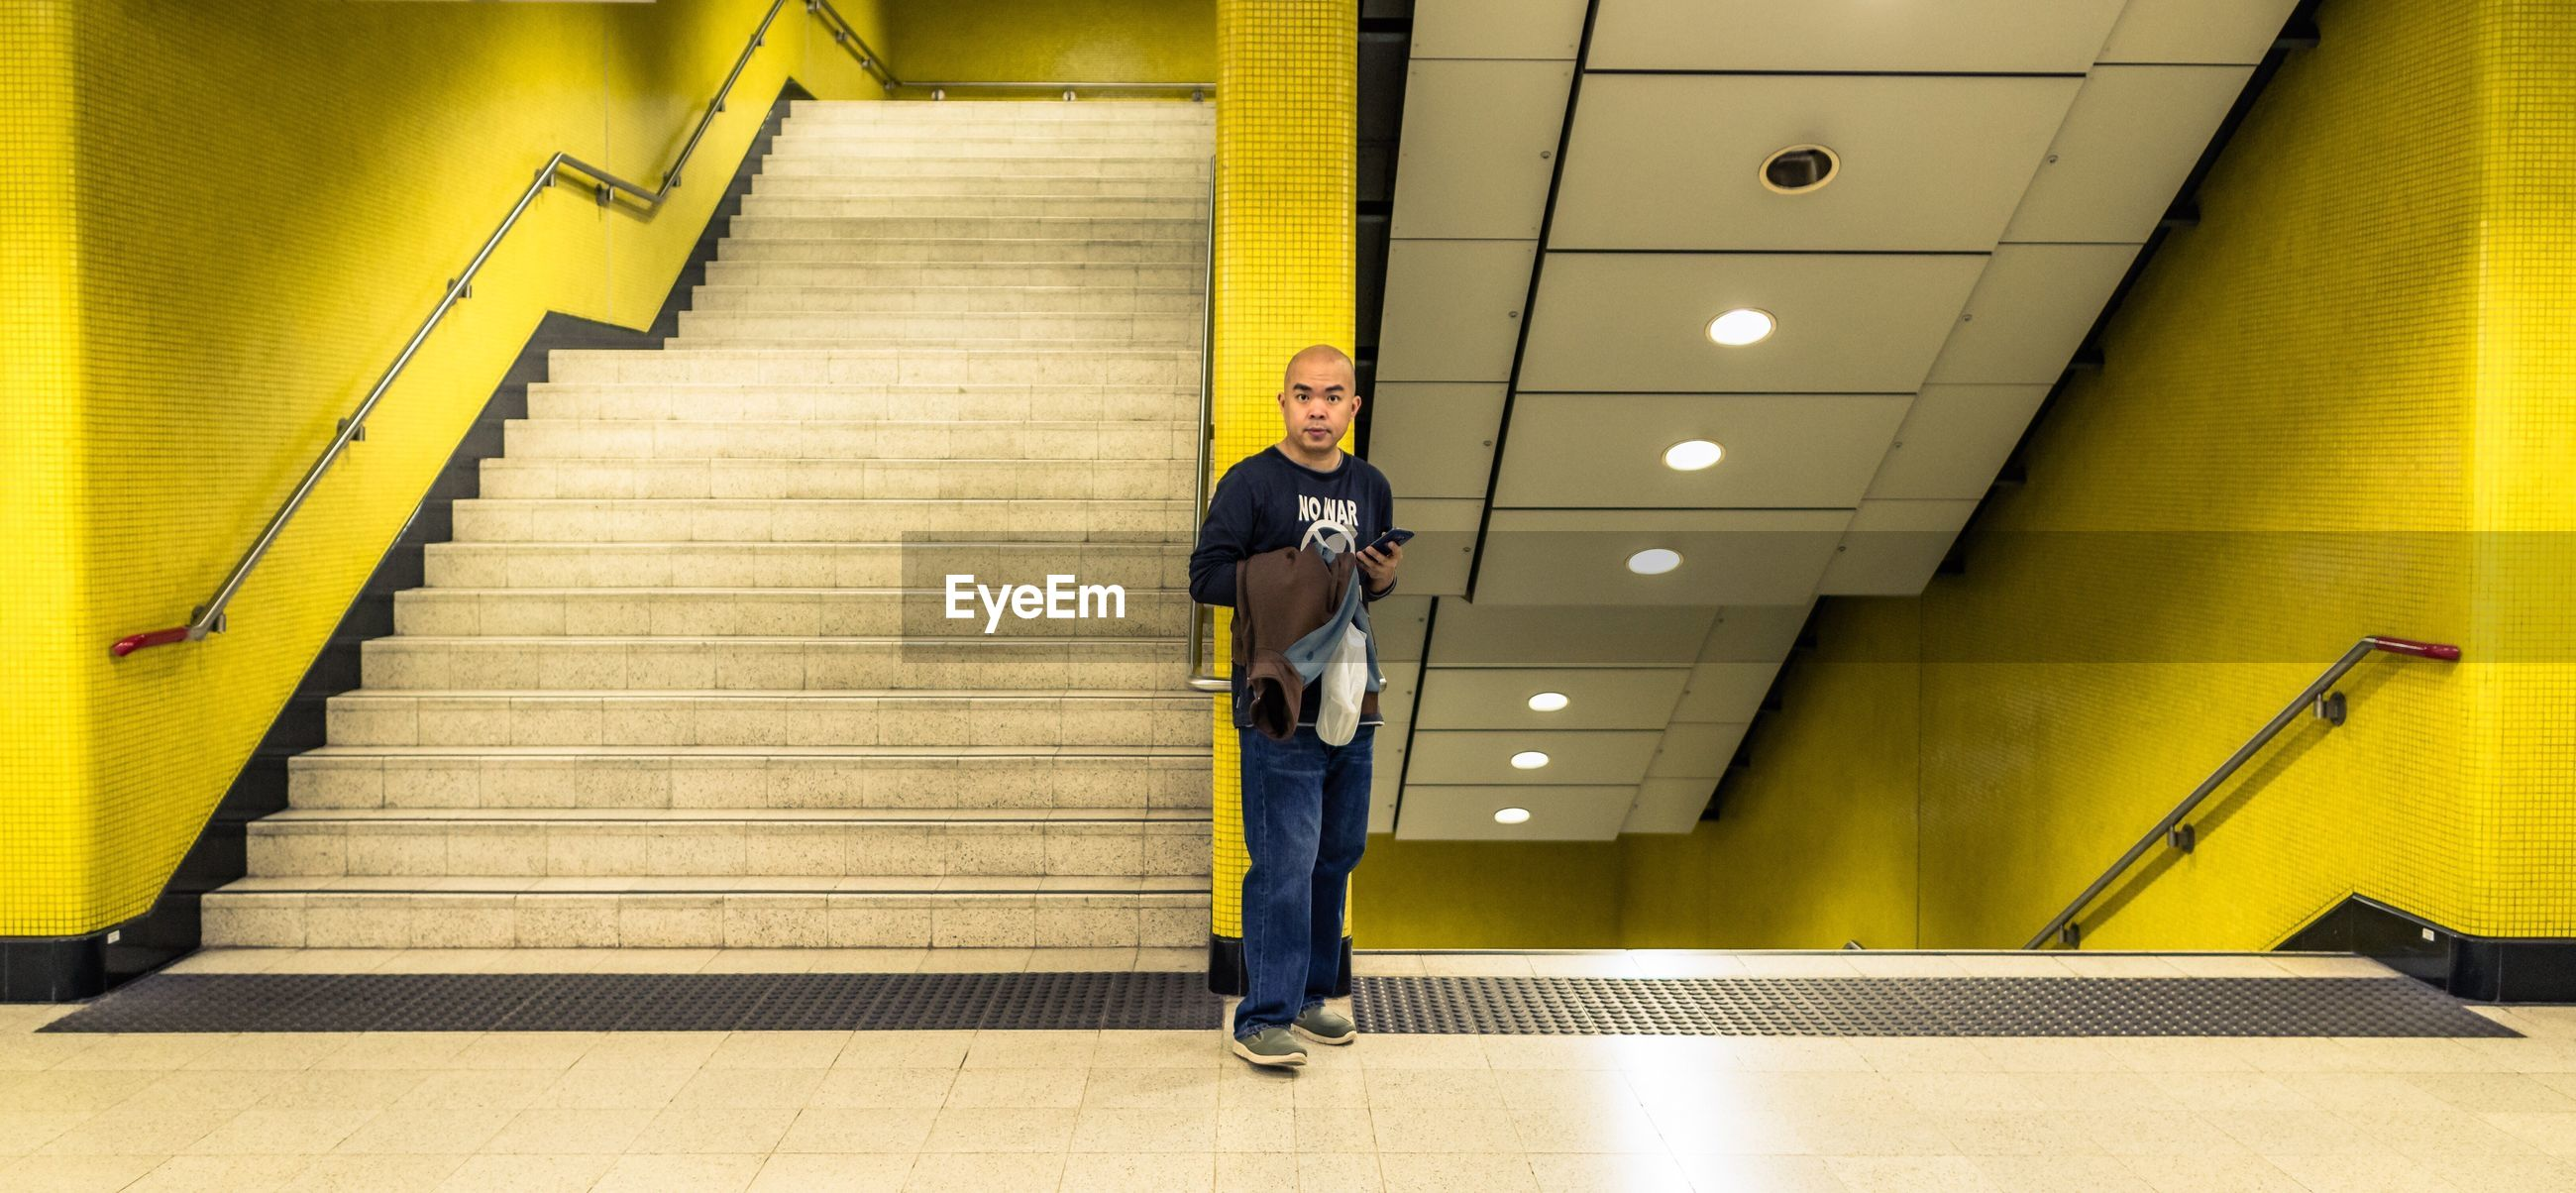 steps, indoors, steps and staircases, yellow, lifestyles, full length, staircase, escalator, men, wall - building feature, technology, walking, casual clothing, leisure activity, high angle view, convenience, the way forward, transportation